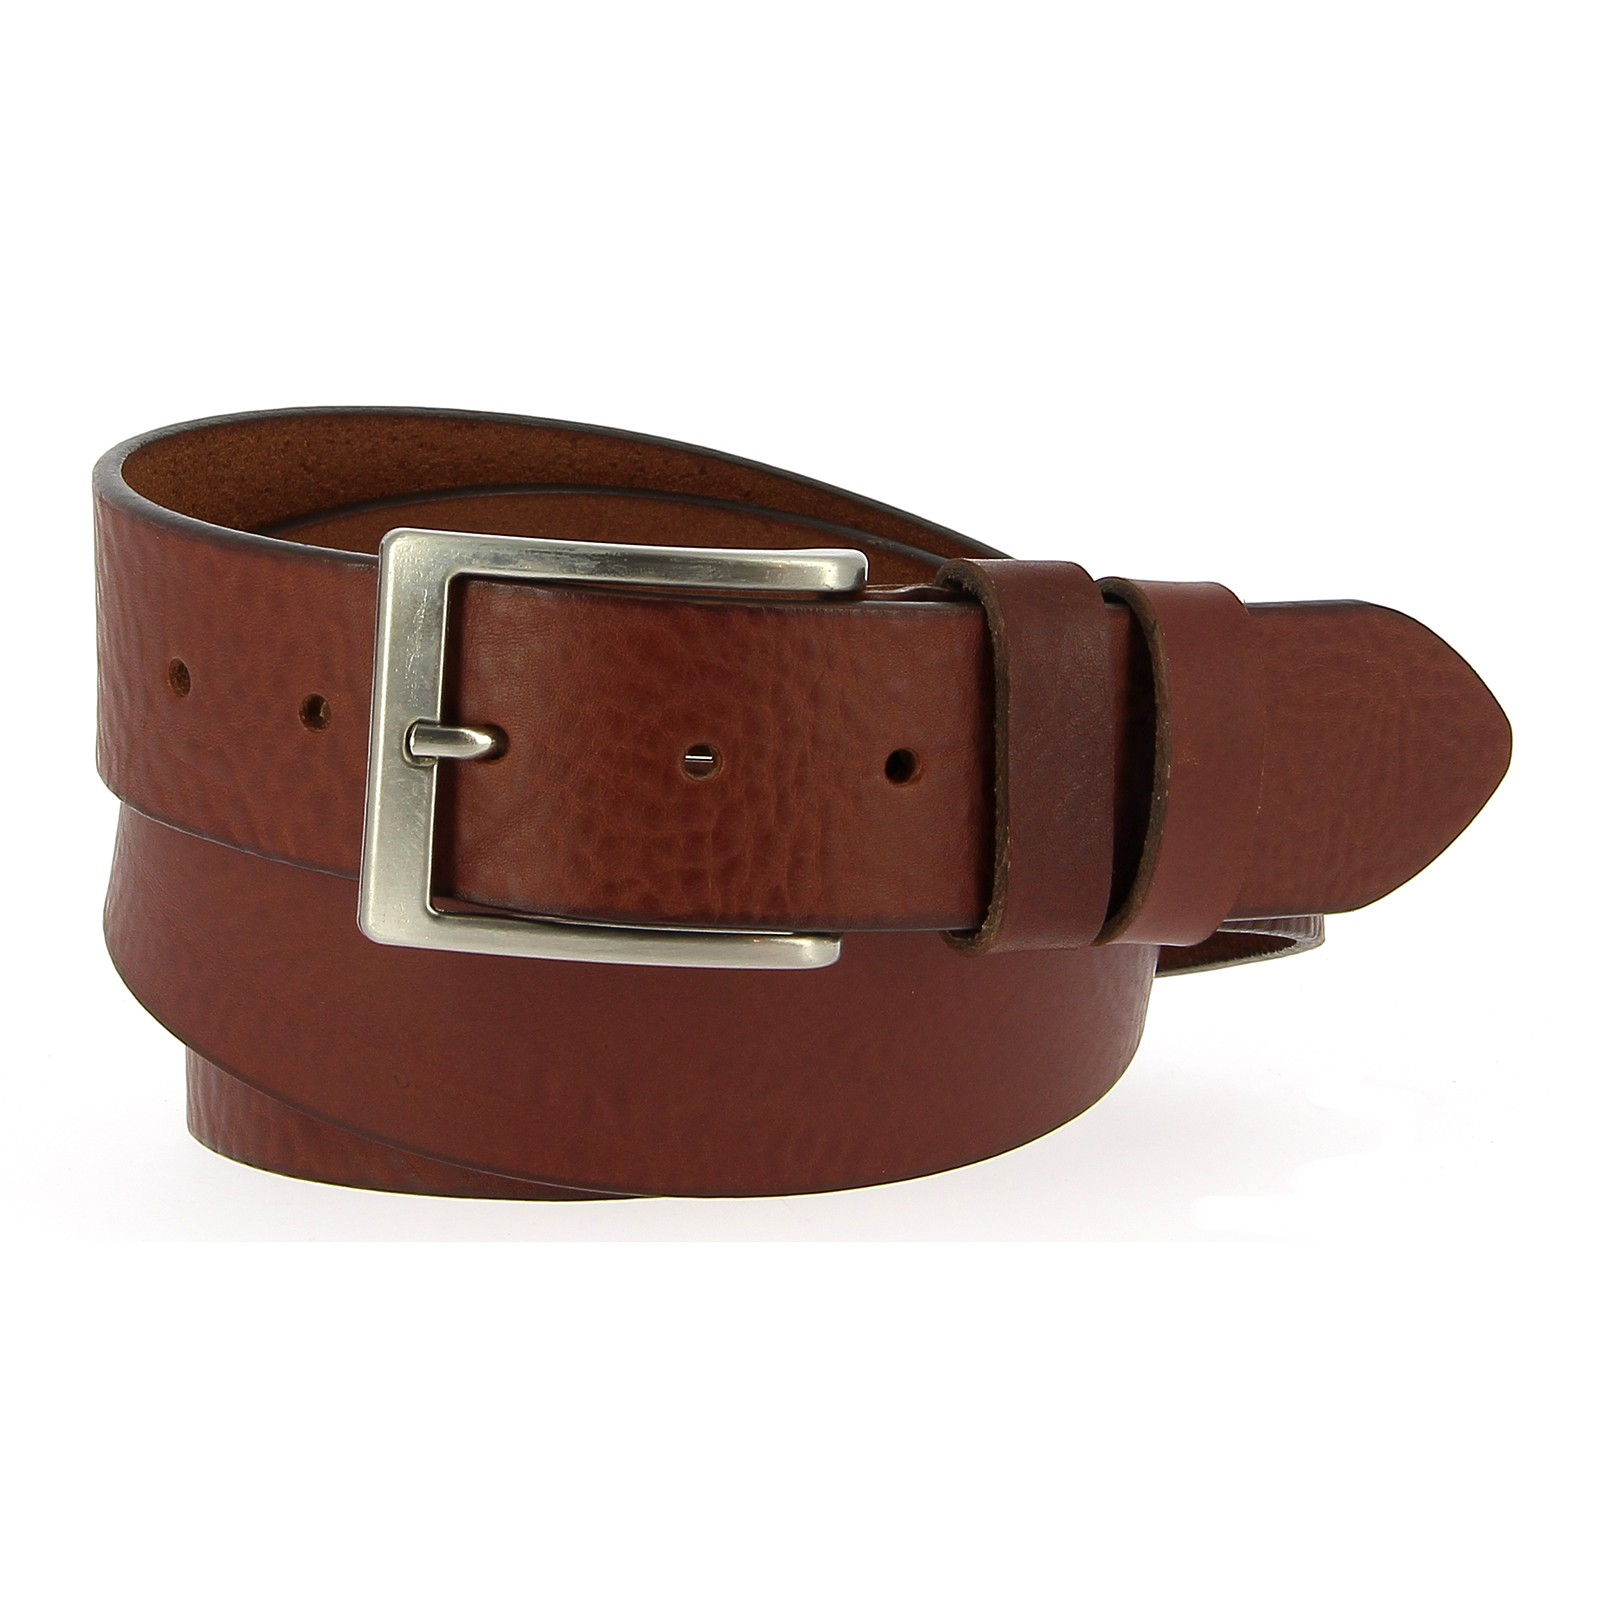 Belts Leather 40mm 130cm Jean Medium Brown